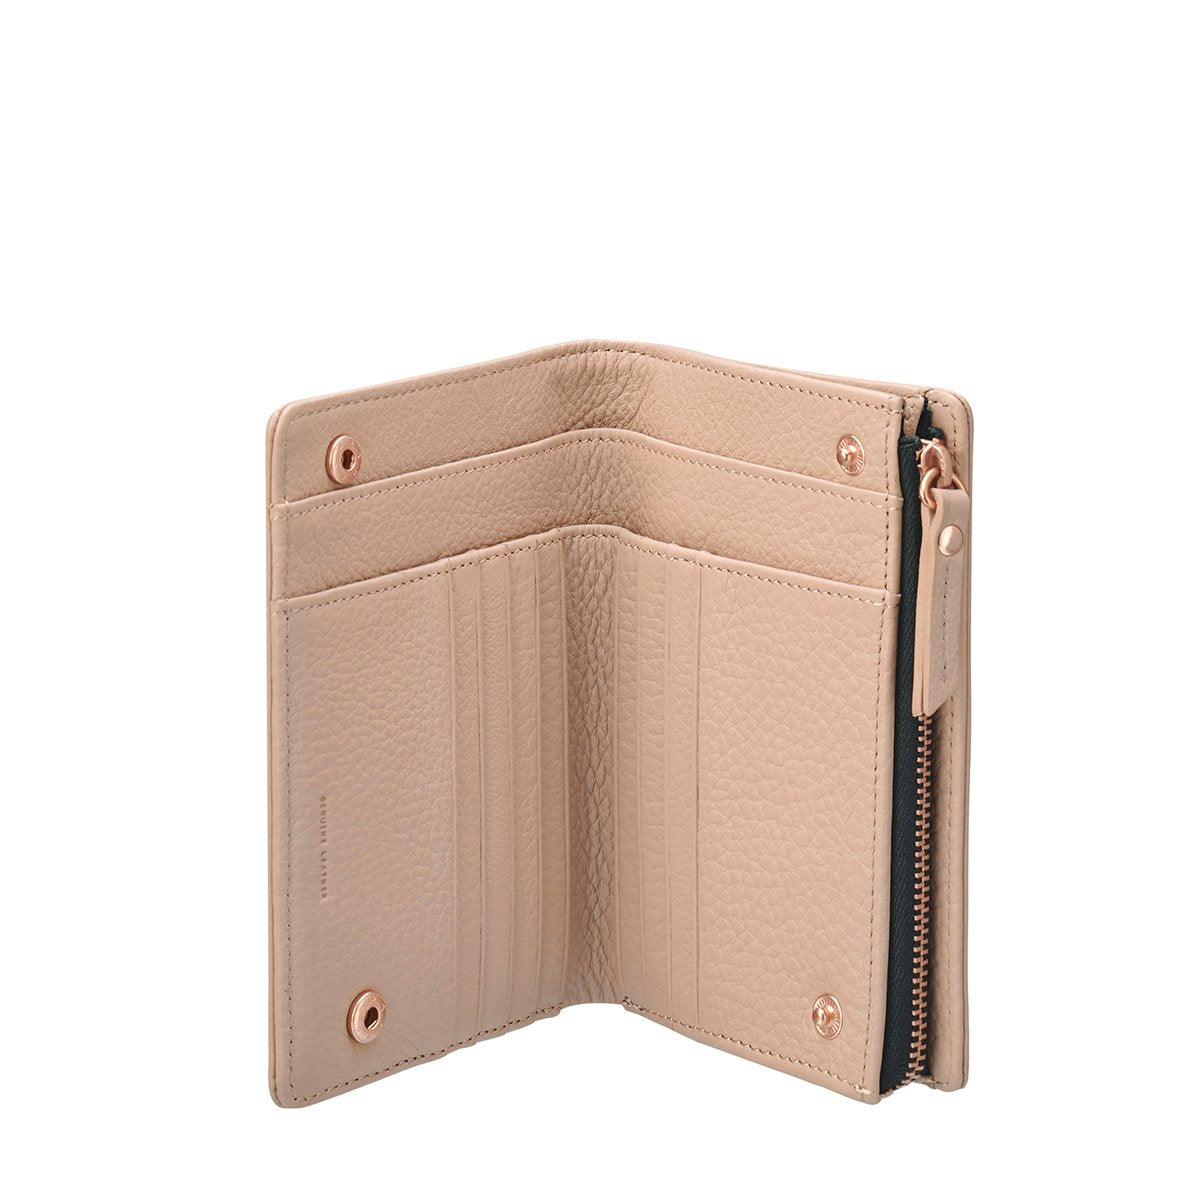 Status Anxiety Insurgency Wallet Blush Pink side view